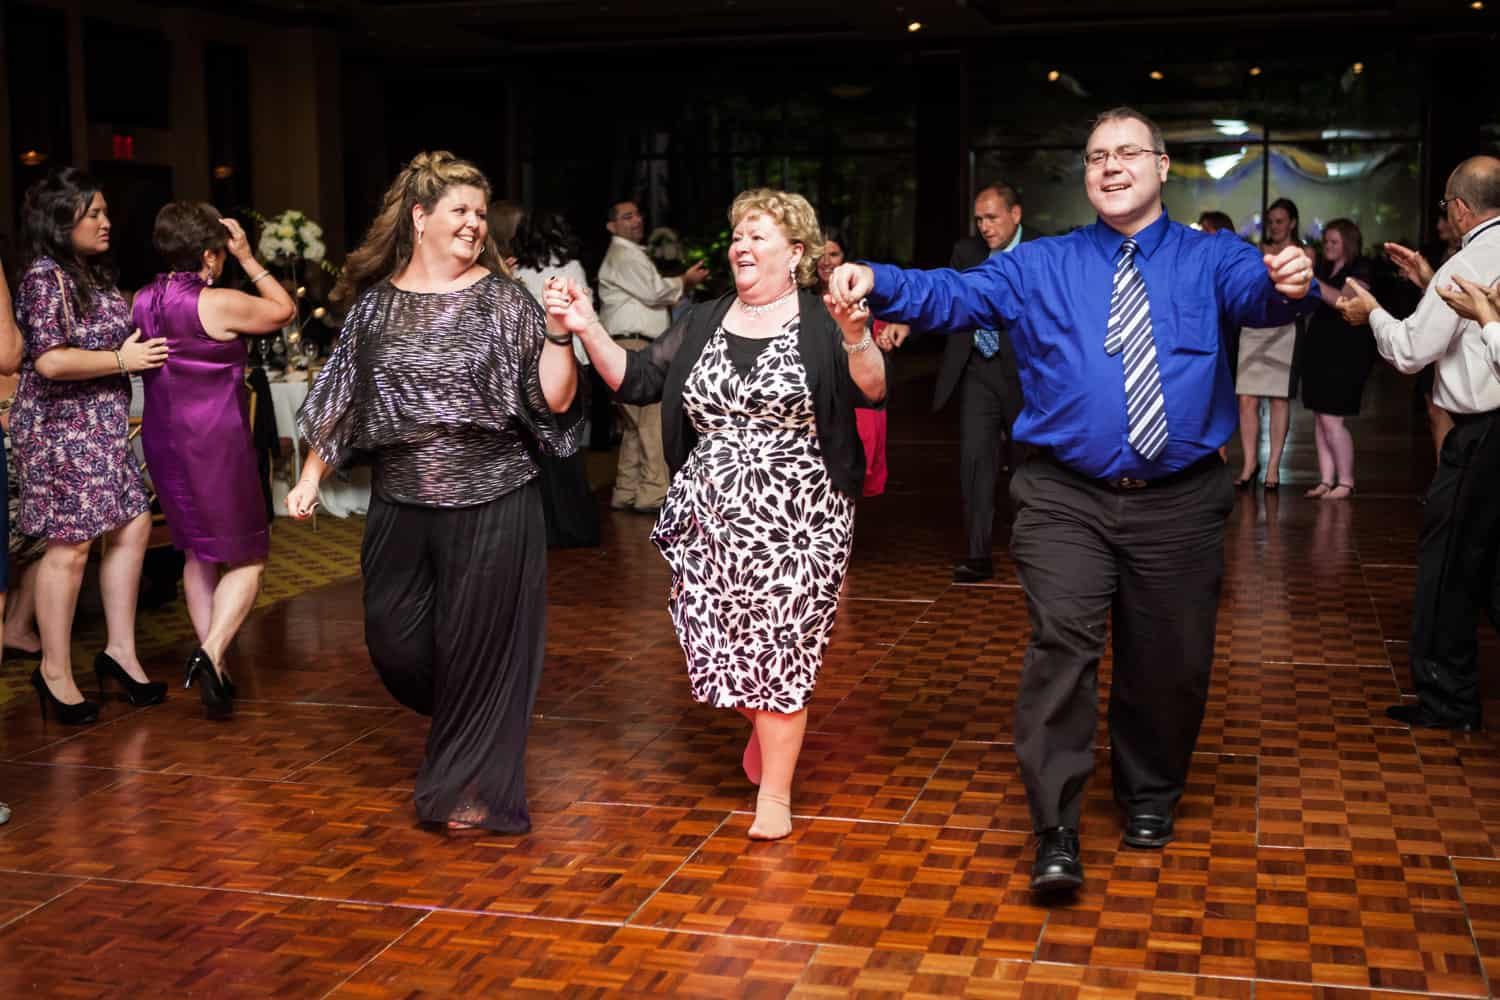 Three guests in line dance at a Nicotra's Ballroom wedding